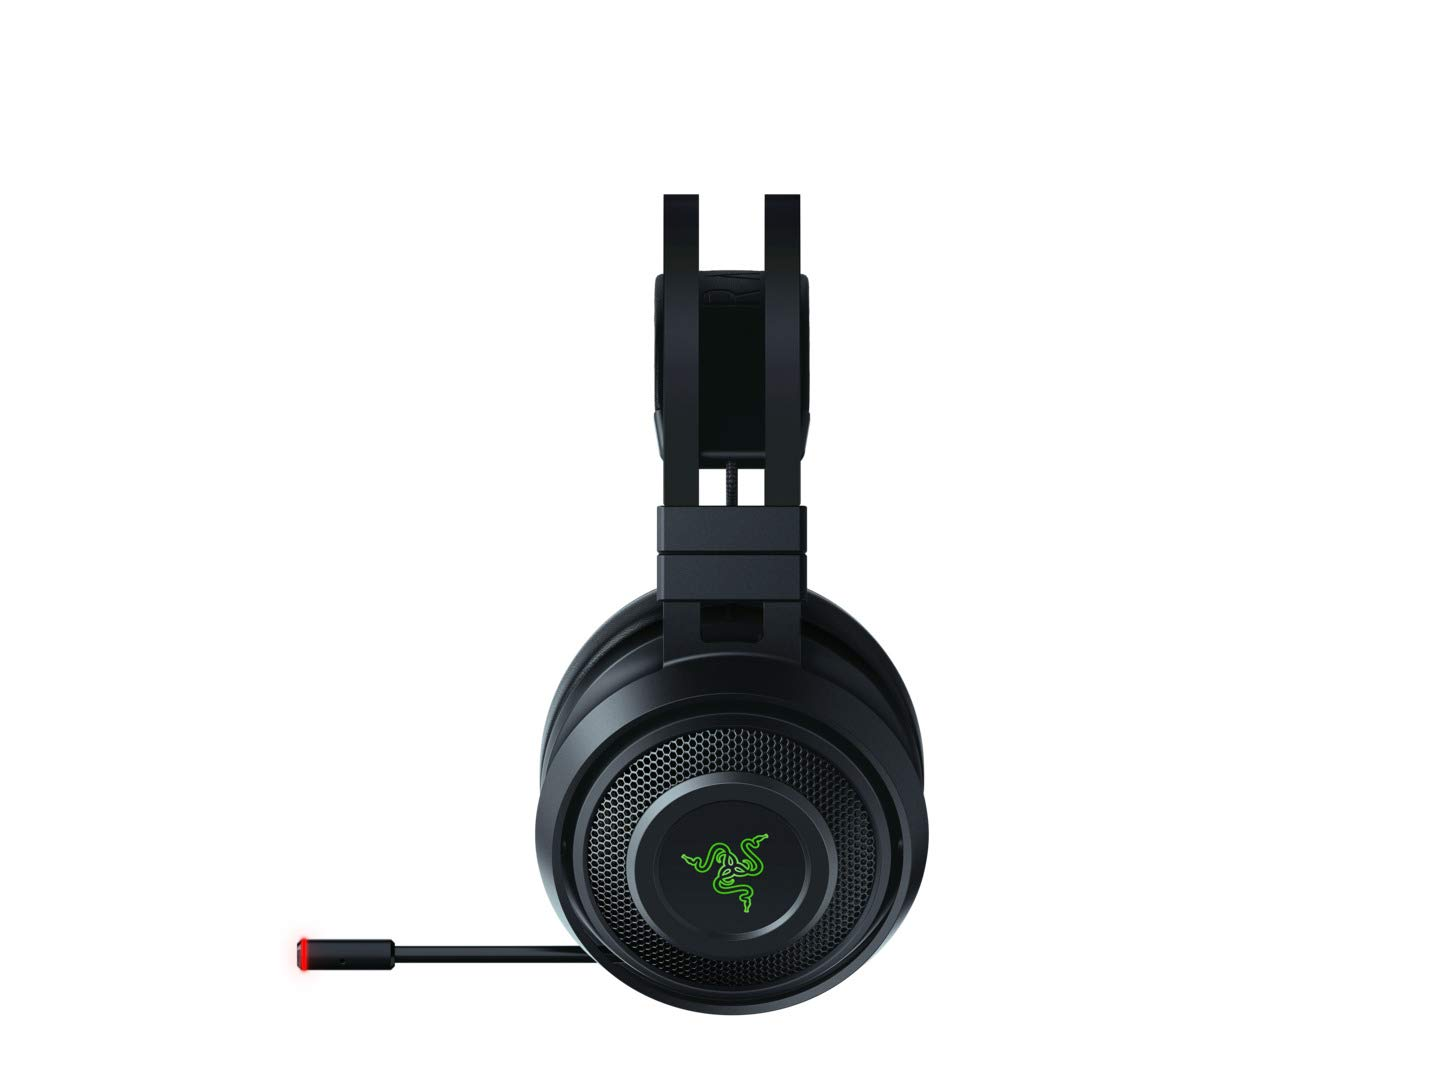 Razer Nari Wireless: THX Spatial Audio - Cooling Gel-Infused Cushions - 2.4GHz Wireless Audio - Mic with Game/Chat Balance - Gaming Headset Works for PC, PS4, Switch & Mobile Devices Razer USA Ltd RZ04-02680100-R3U1